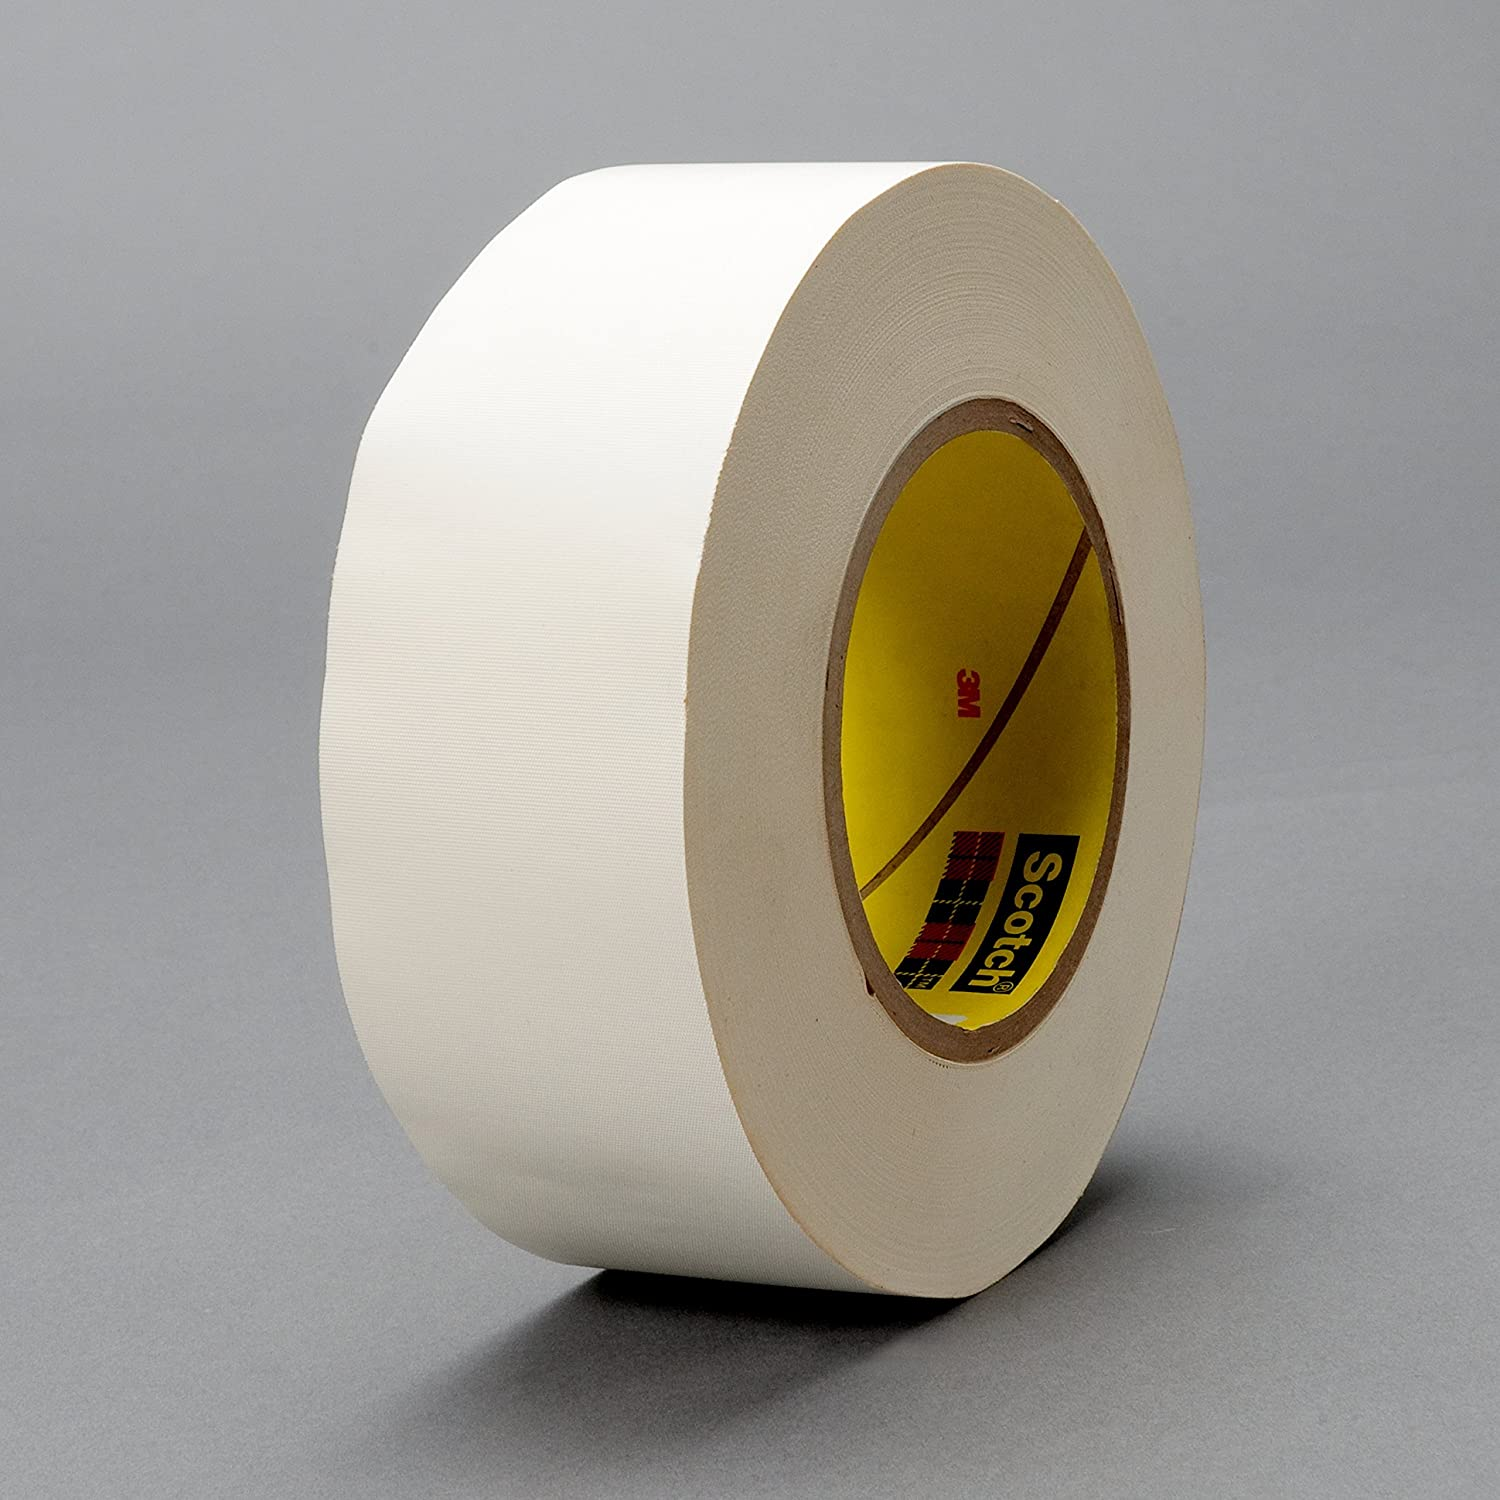 Image of 3M 39319-case Tape, 1-1/2' x 60 yd, 8.3 mil, Glass Cloth, White (Pack of 24) First Aid Tape